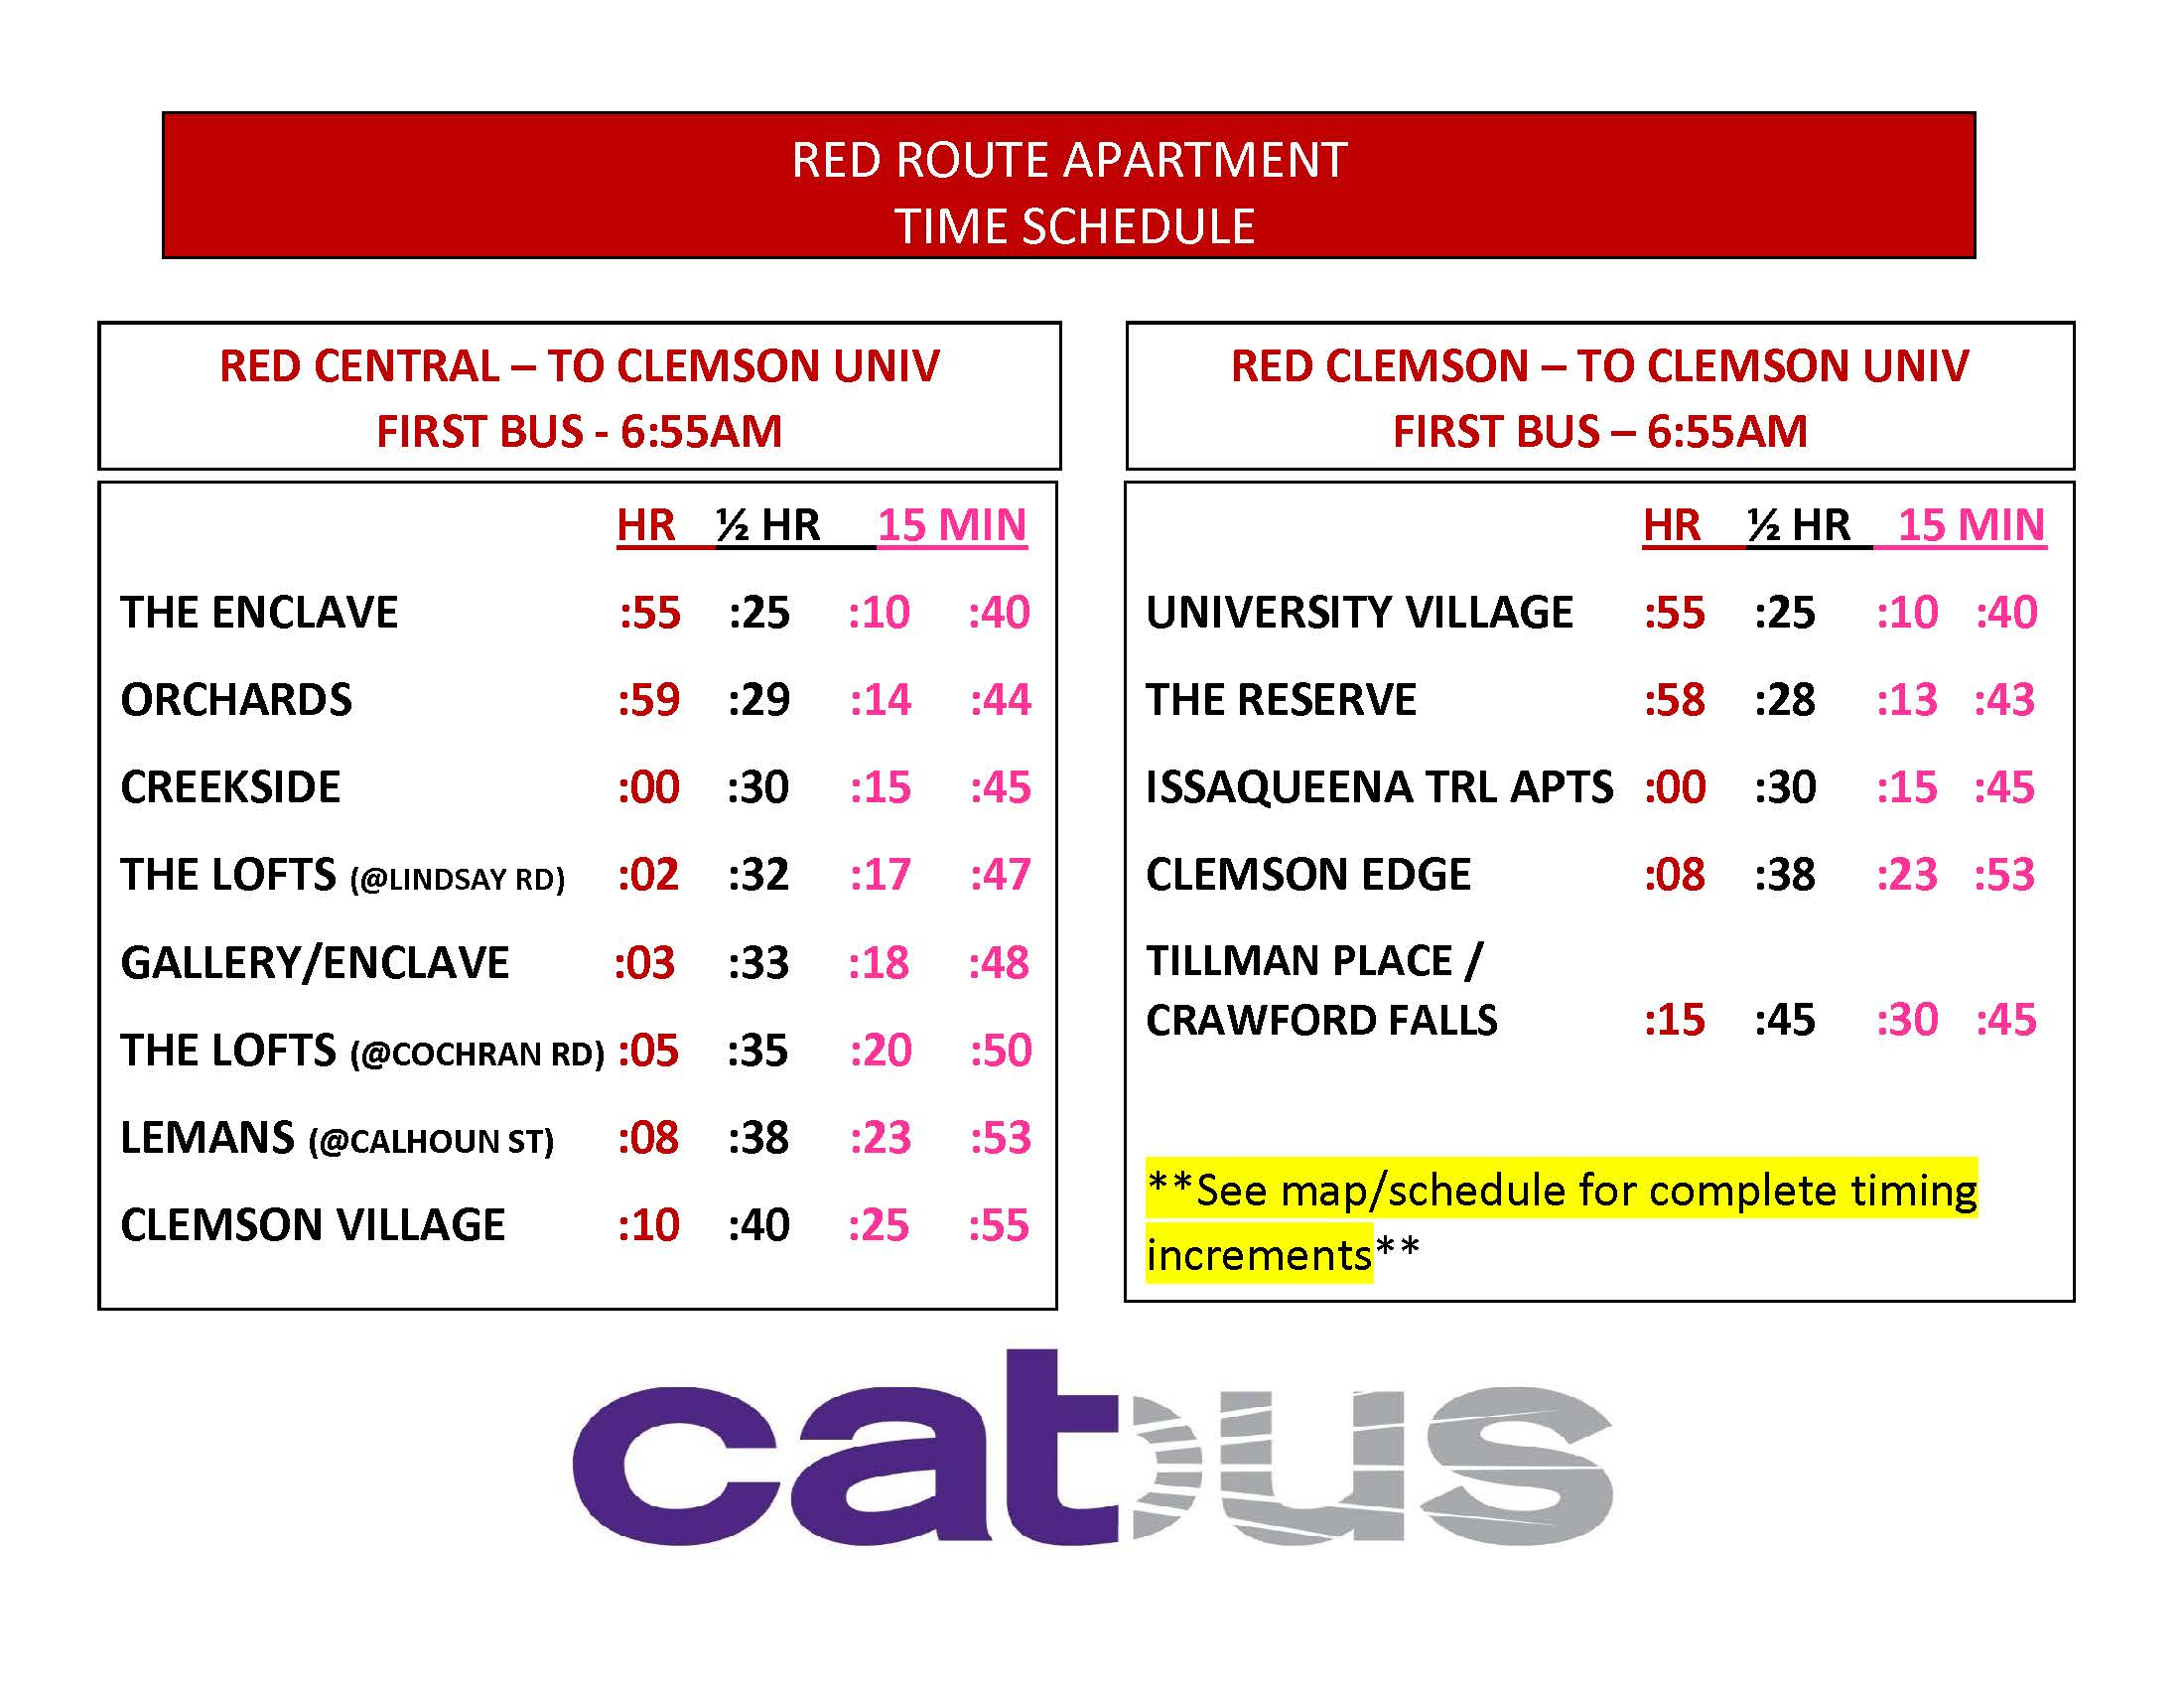 Click to Enlarge Red Route Apartment Time Schedules